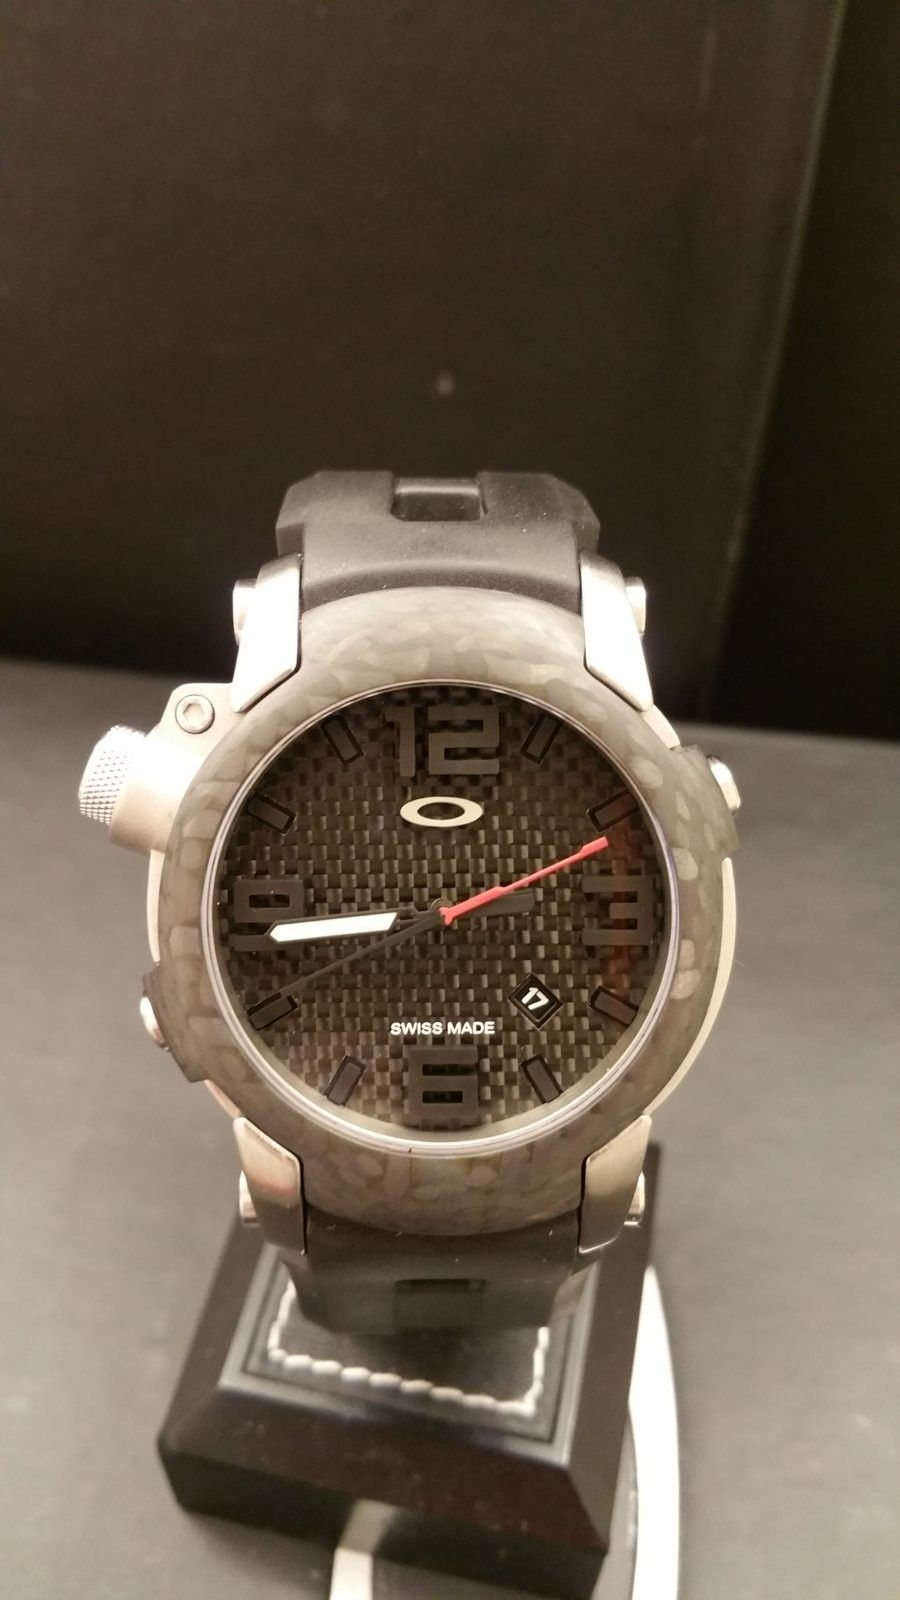 Killswitch carbon fiber bezel - 20160521_205751.jpg